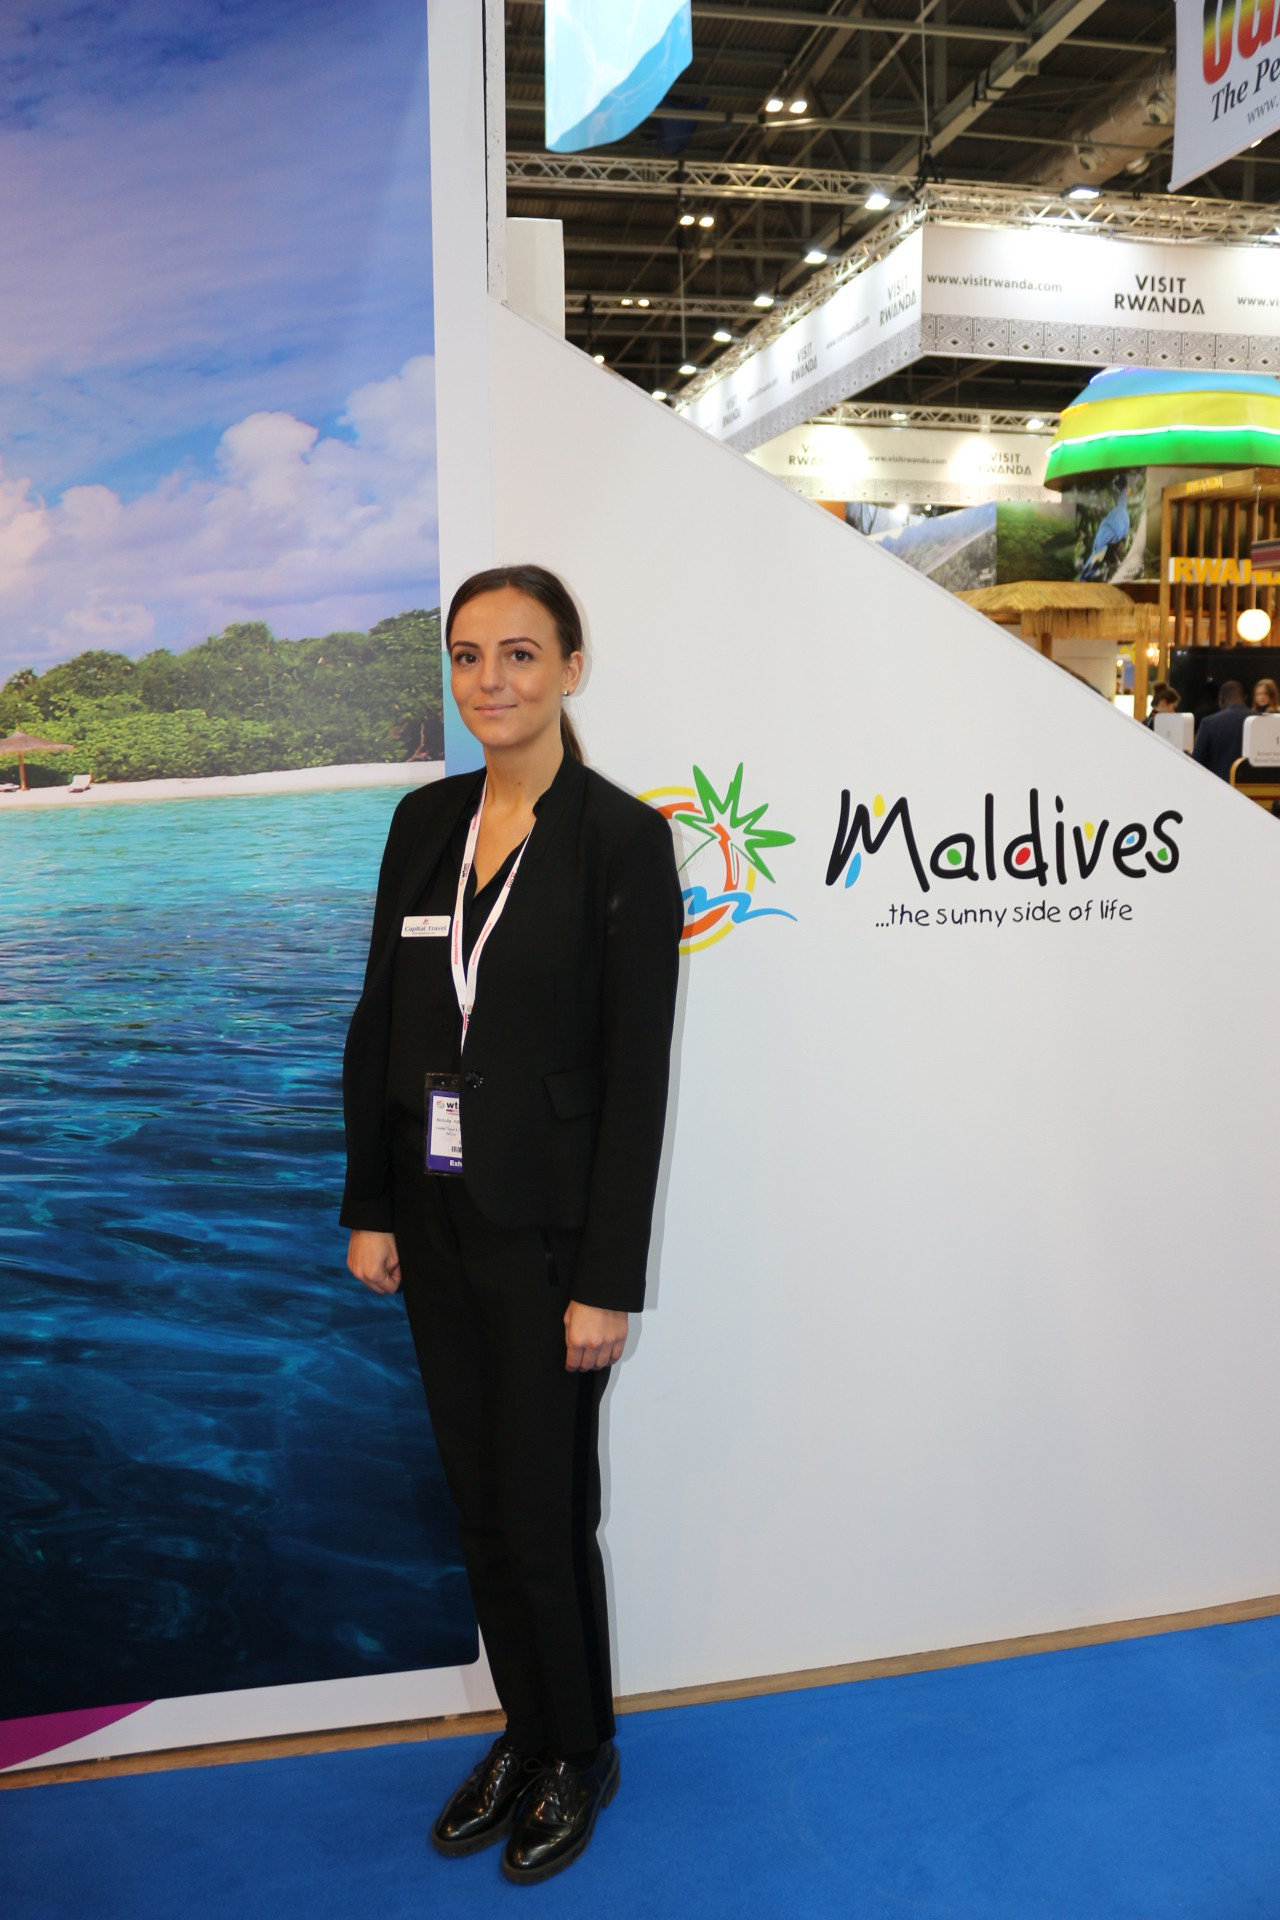 World Travel Market Excel 2019